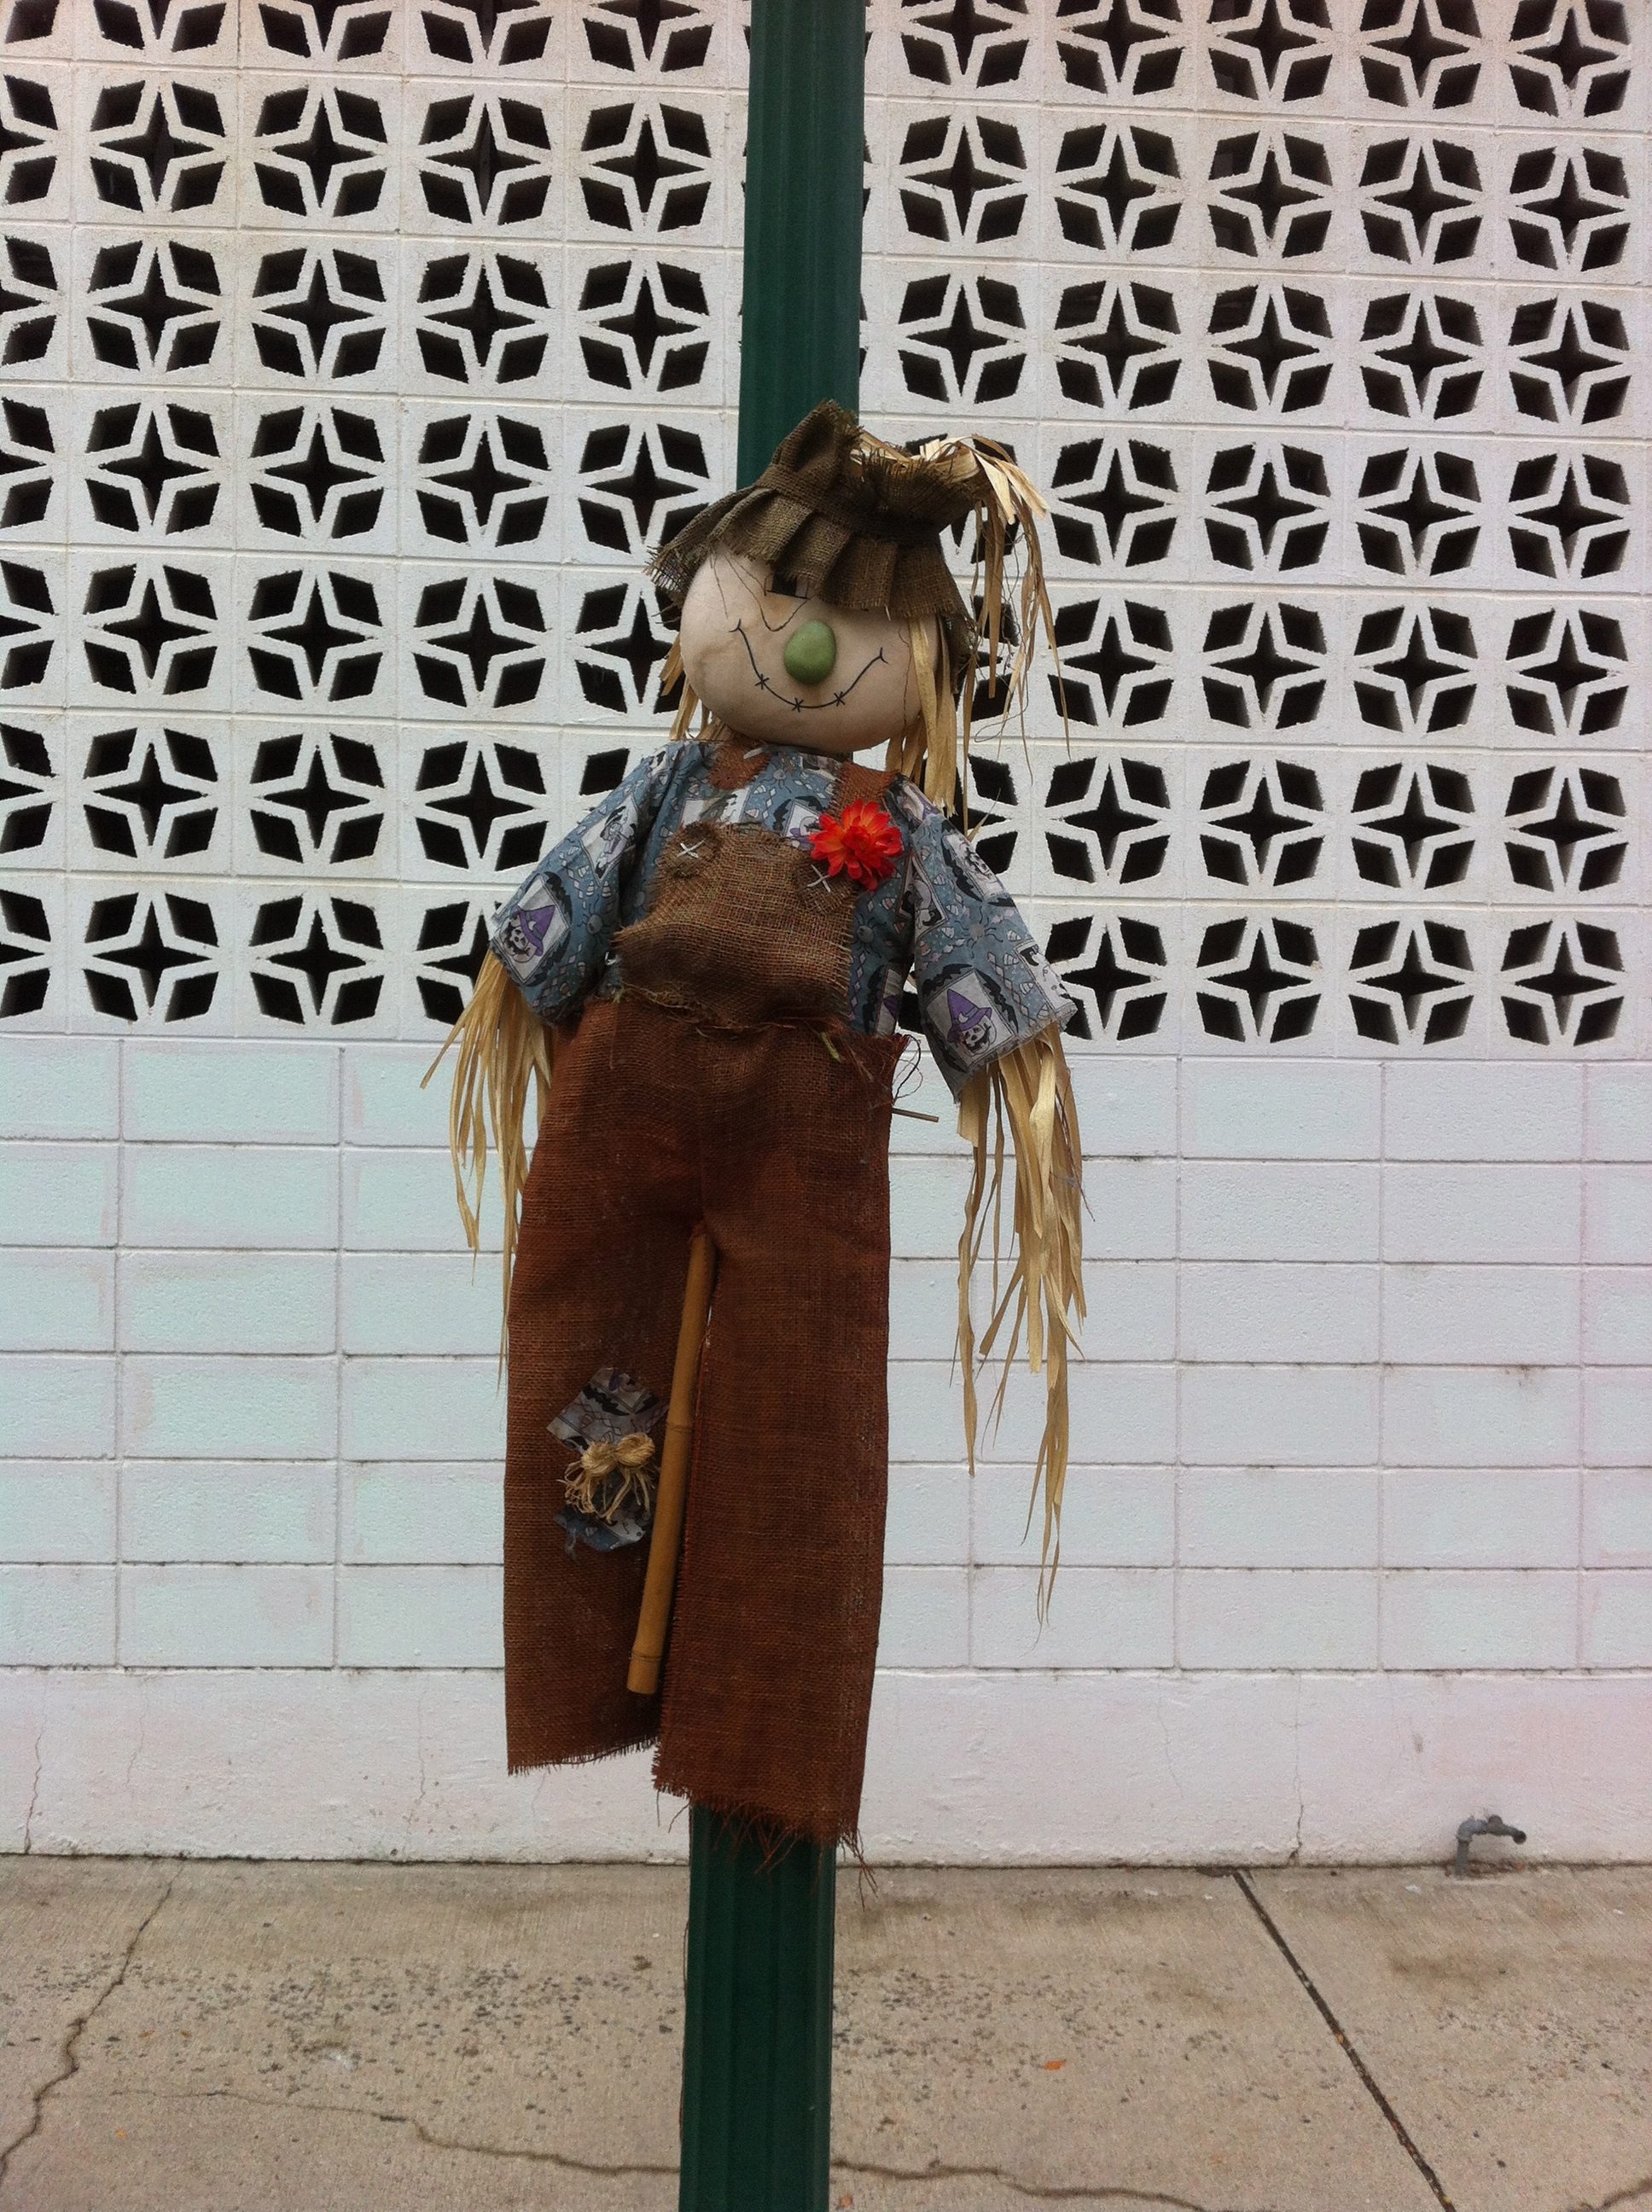 These dolls were fastened to posts throughout the city, at first it was cute then just strange.